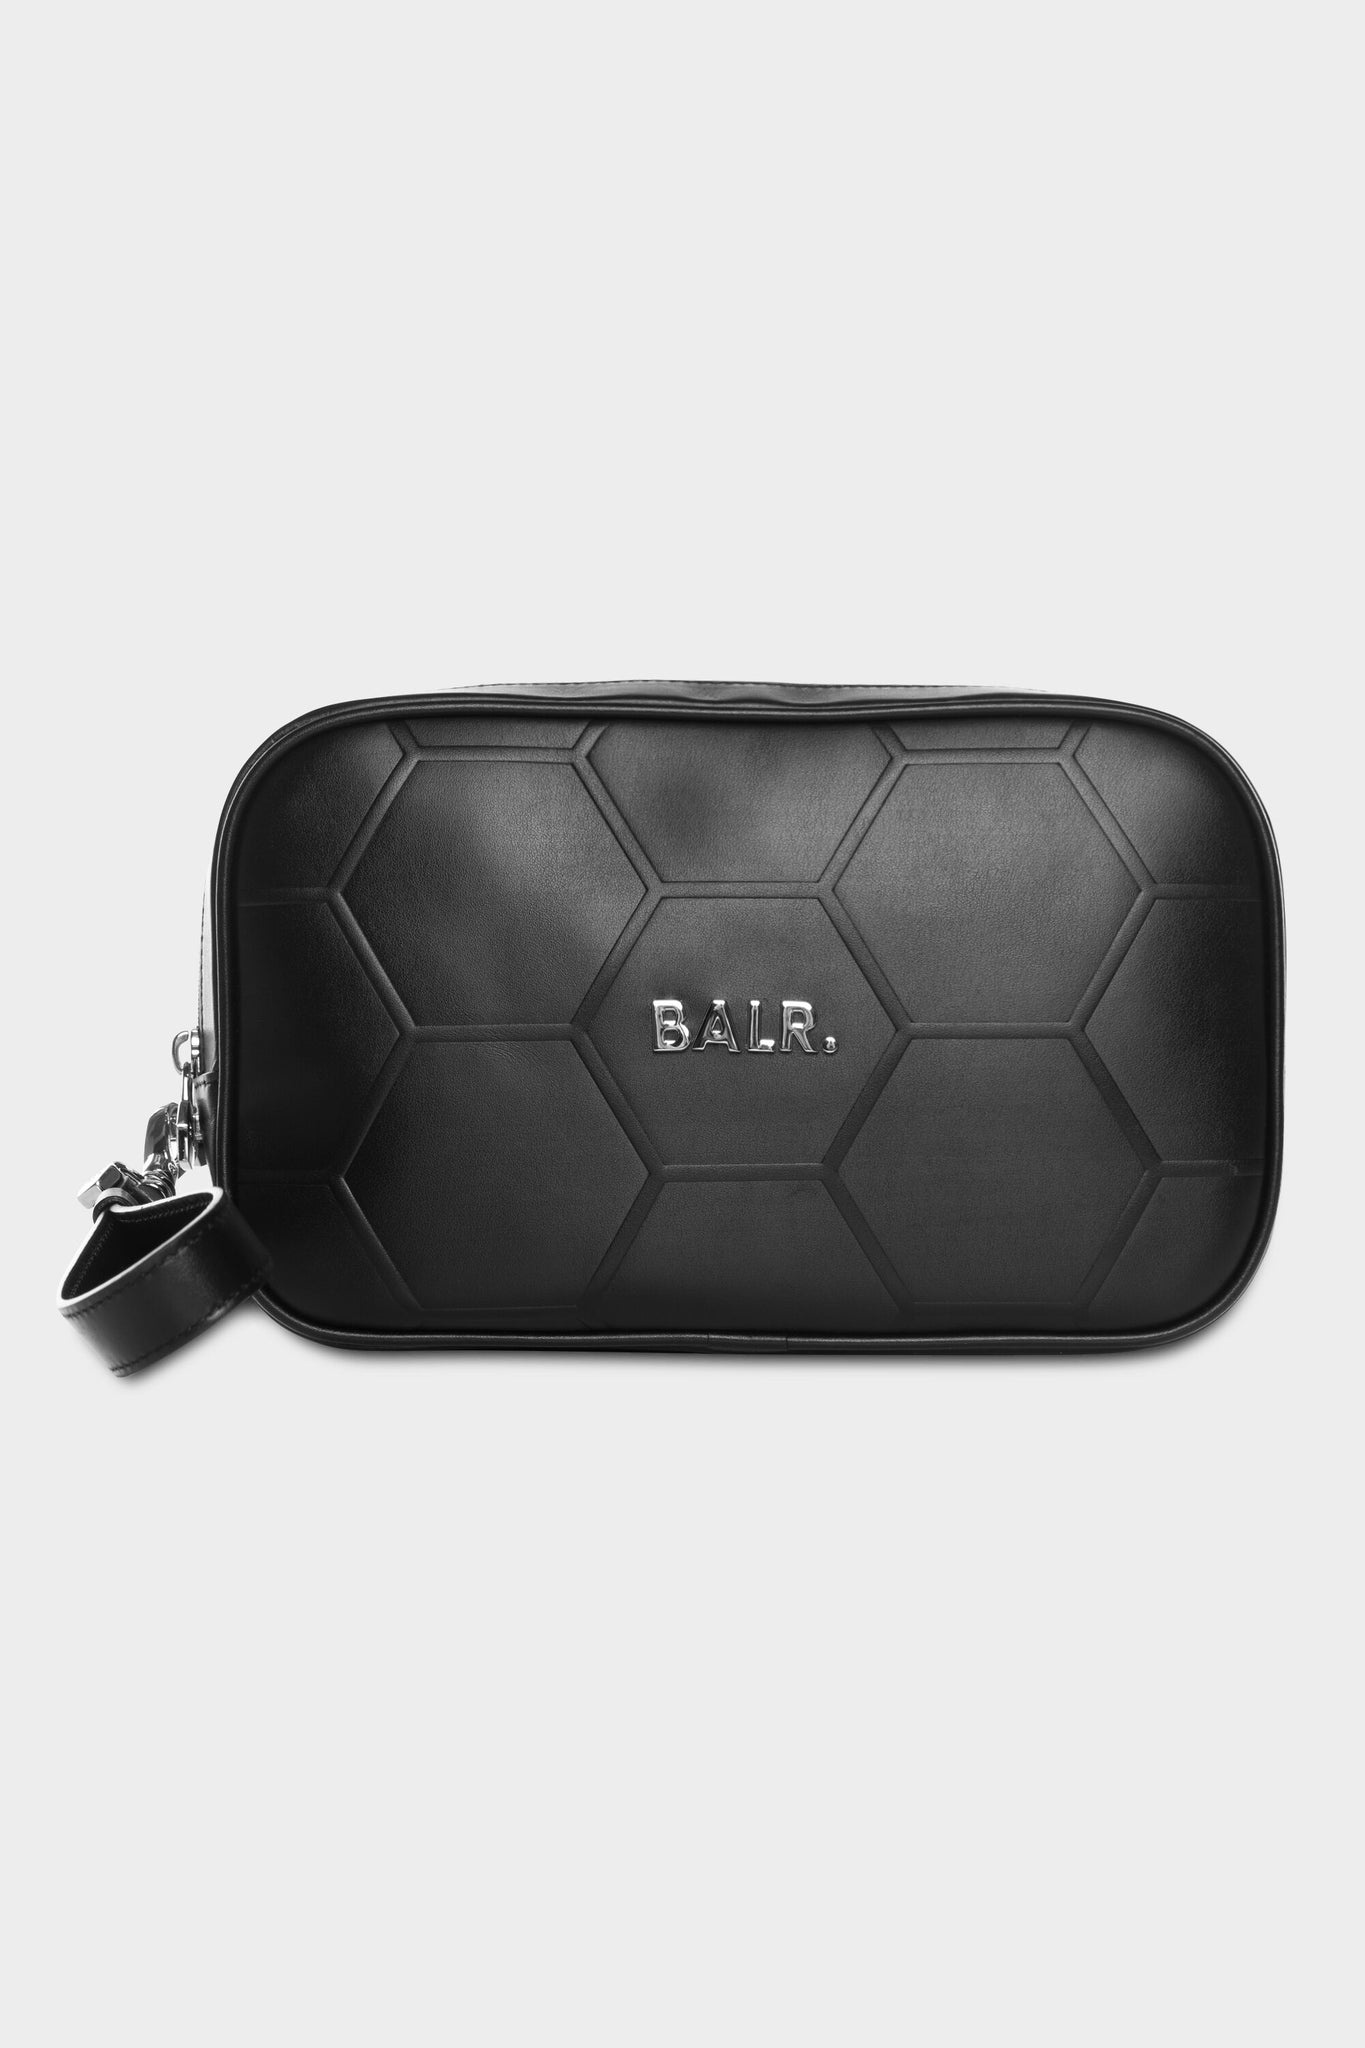 BALR. Hexagon AOP Embossed Leather Toiletry Kit Black